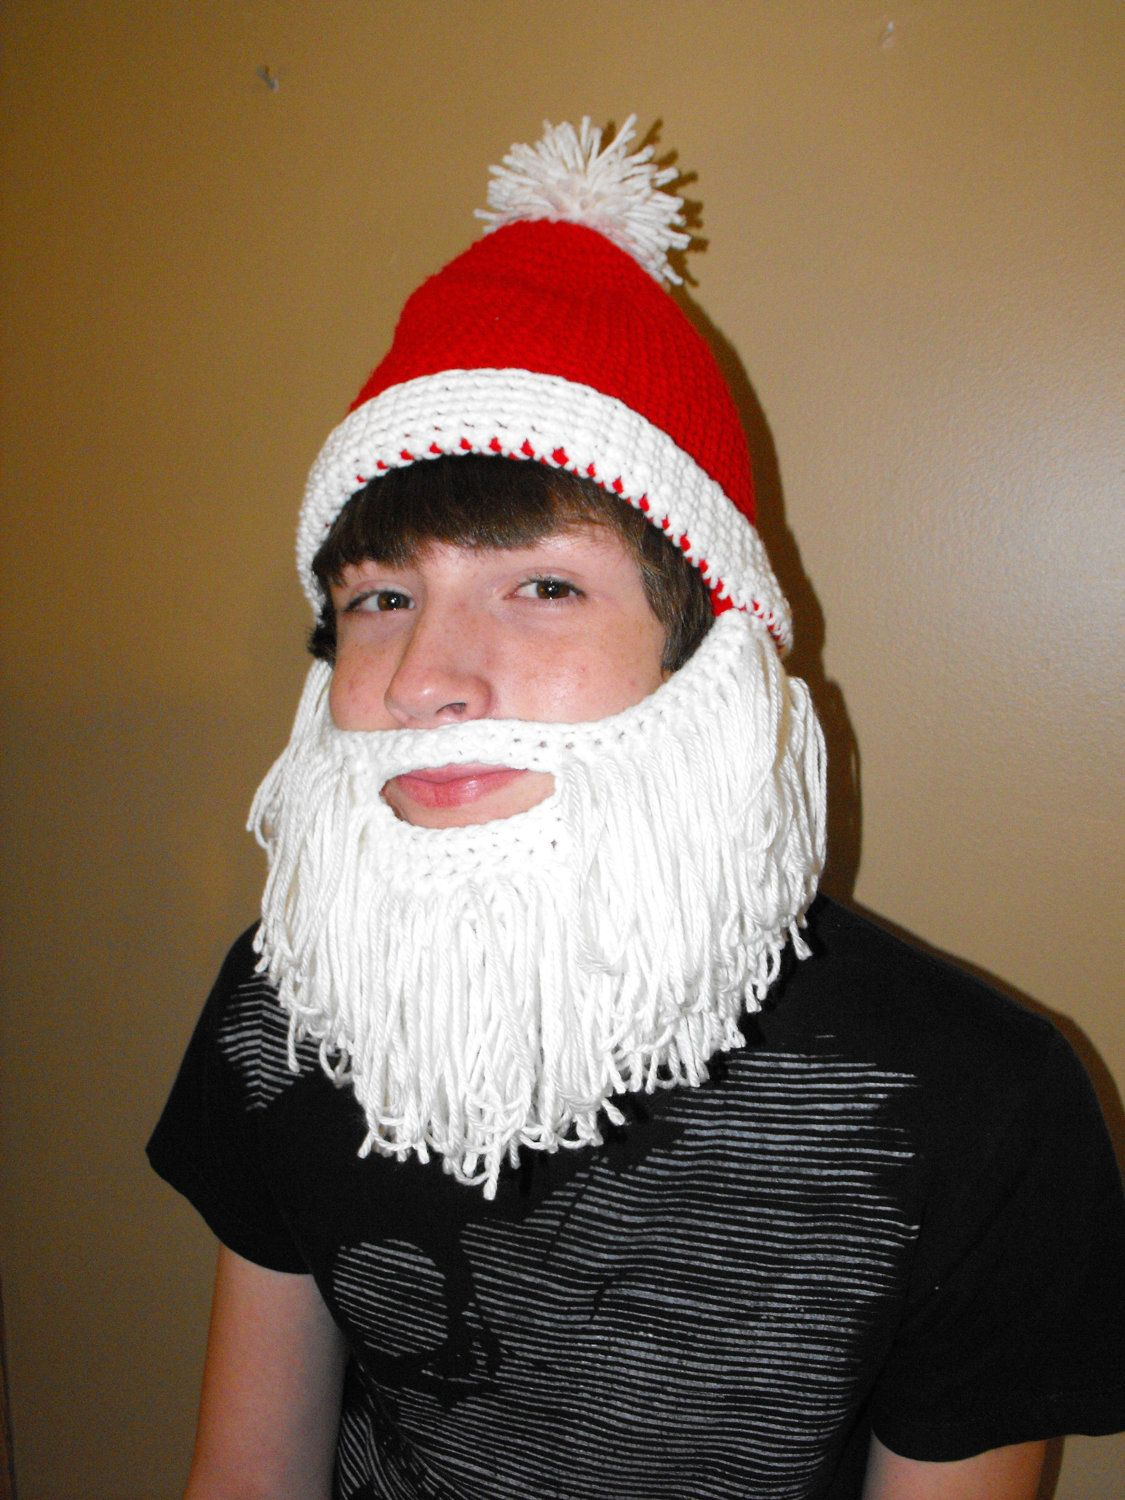 Santa claus beard beanie hat crocheted santa hat with attached hand